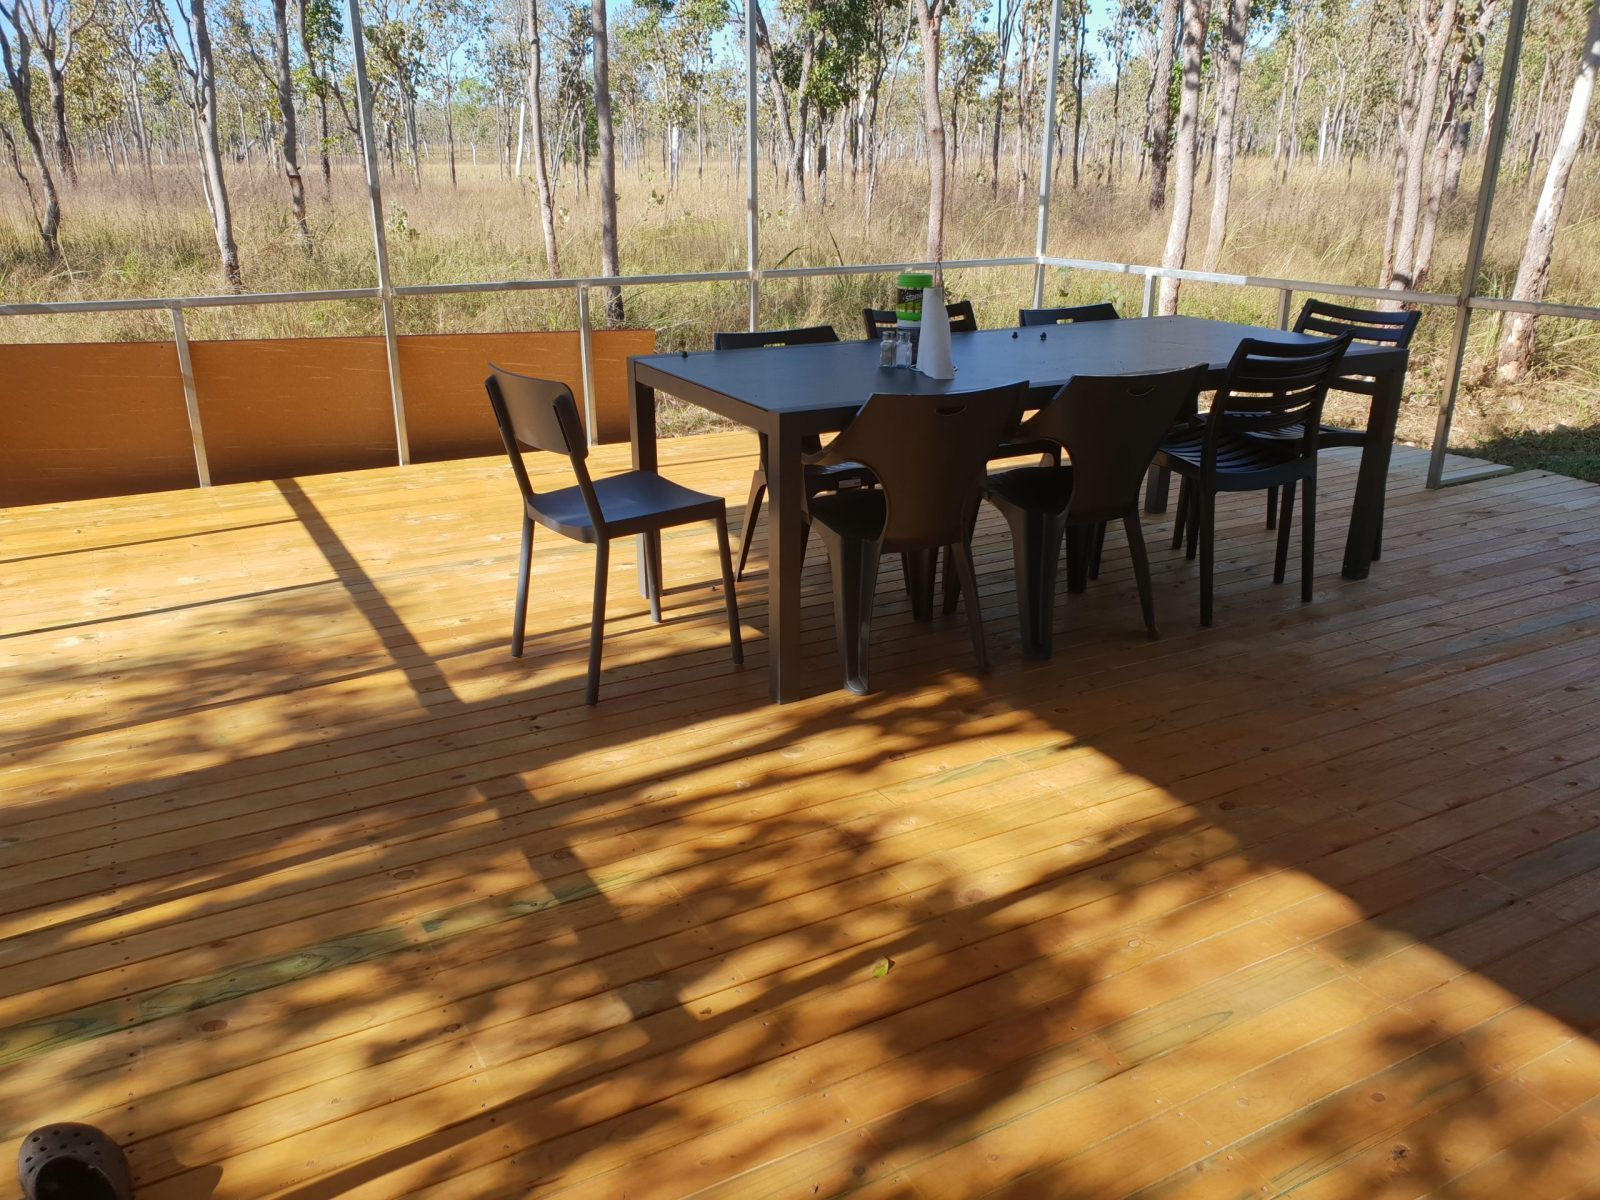 Camp Dining Area